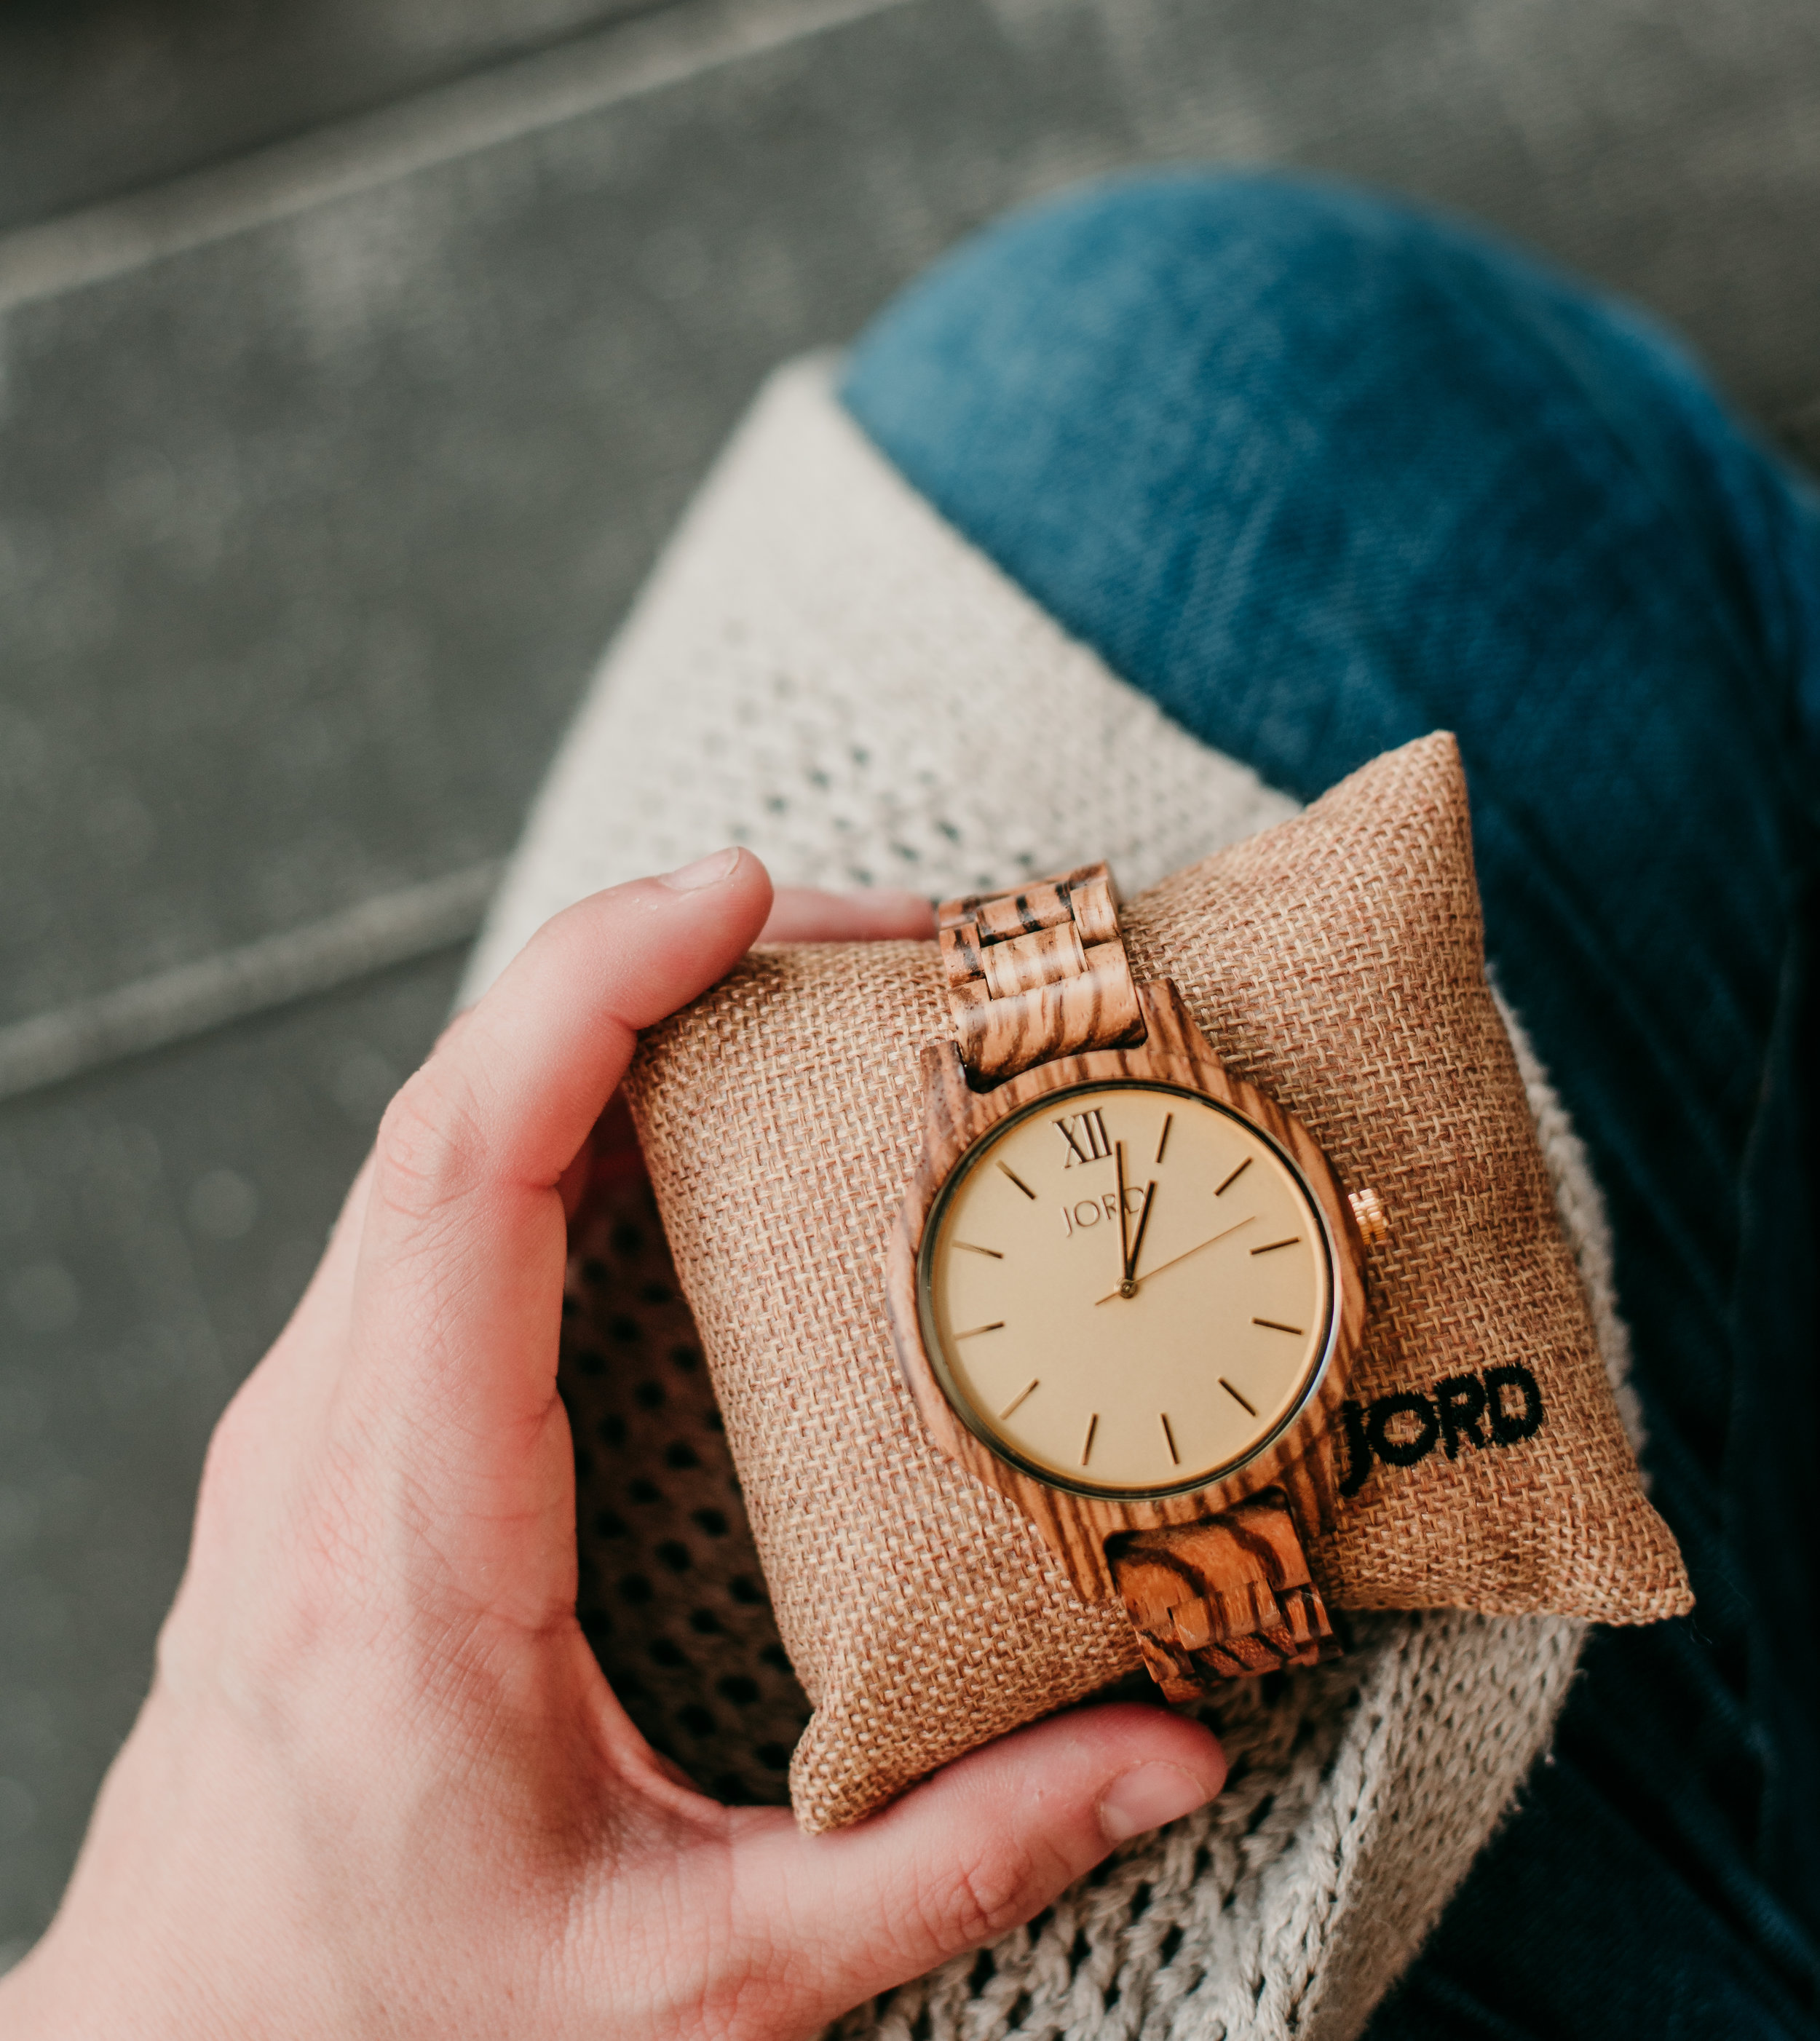 jord-wooden-watch-giveaway-kenosha-wisconsin-chicago-lishmariephoto